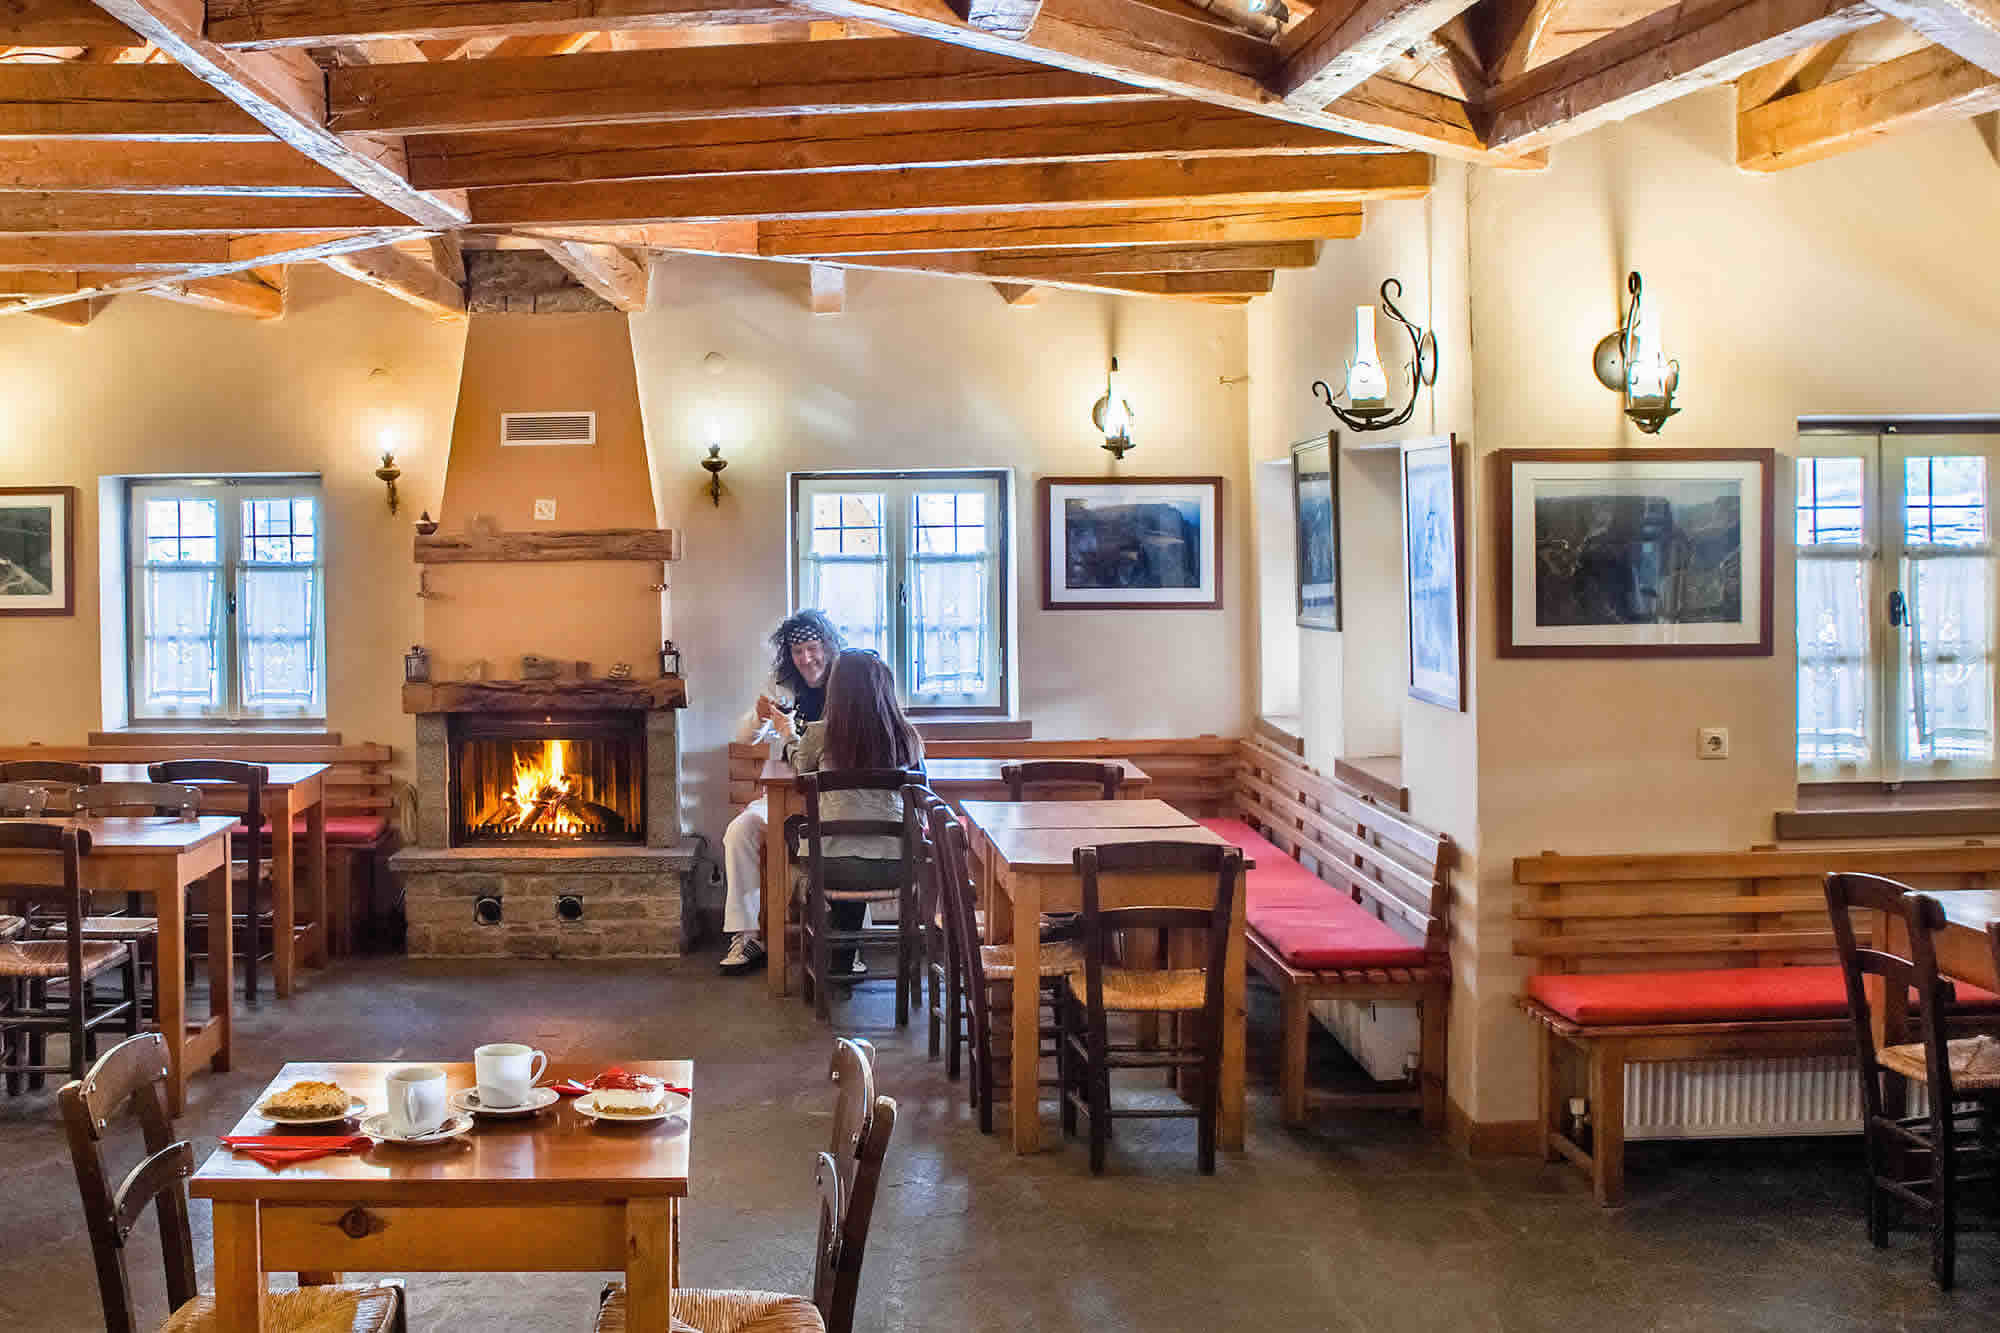 DIAS restaurant in Papigo, Zagori is famous for its delicious soups among other delicacies